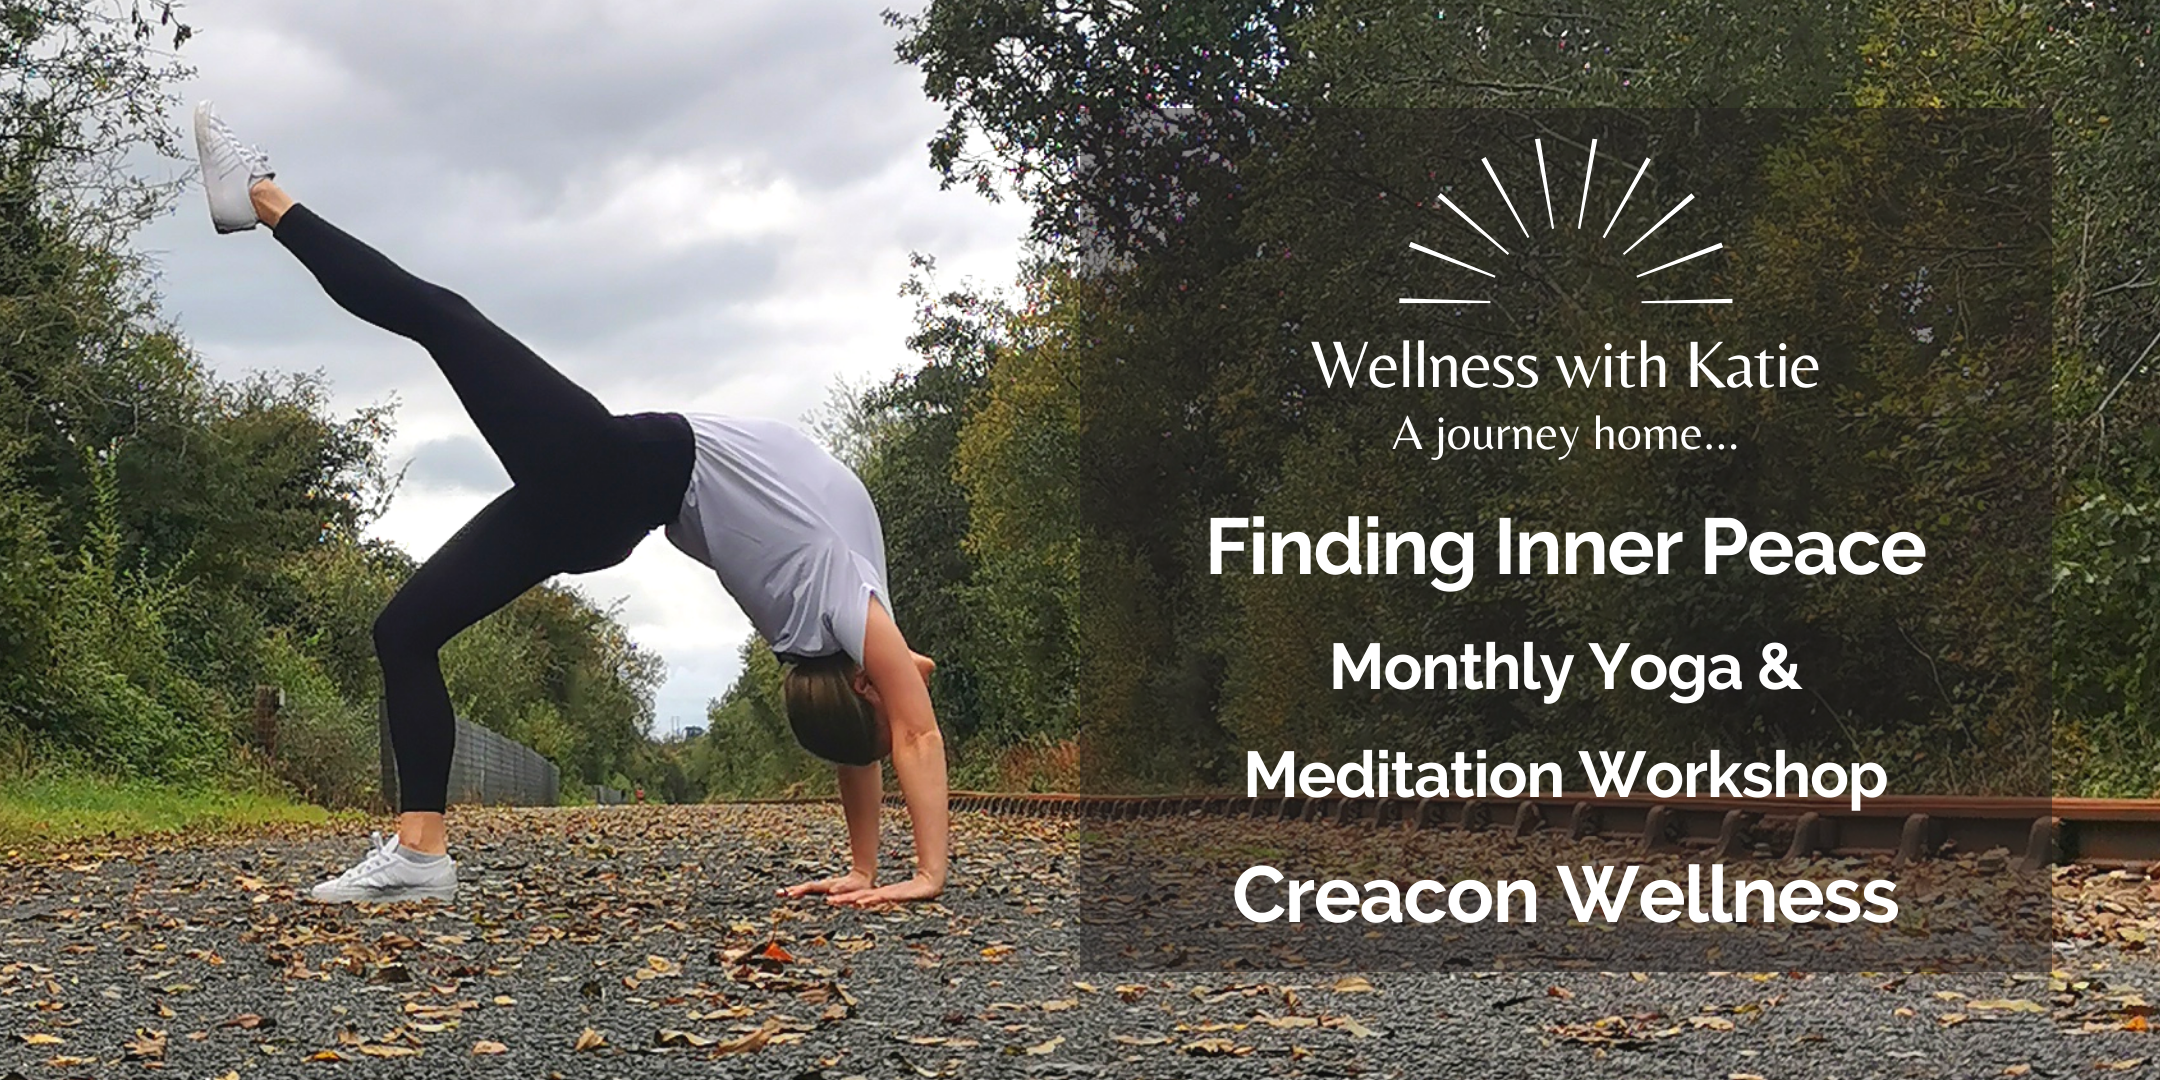 Finding Inner Peace Monthly Yoga and Meditation Workshop - Creacon Wellness